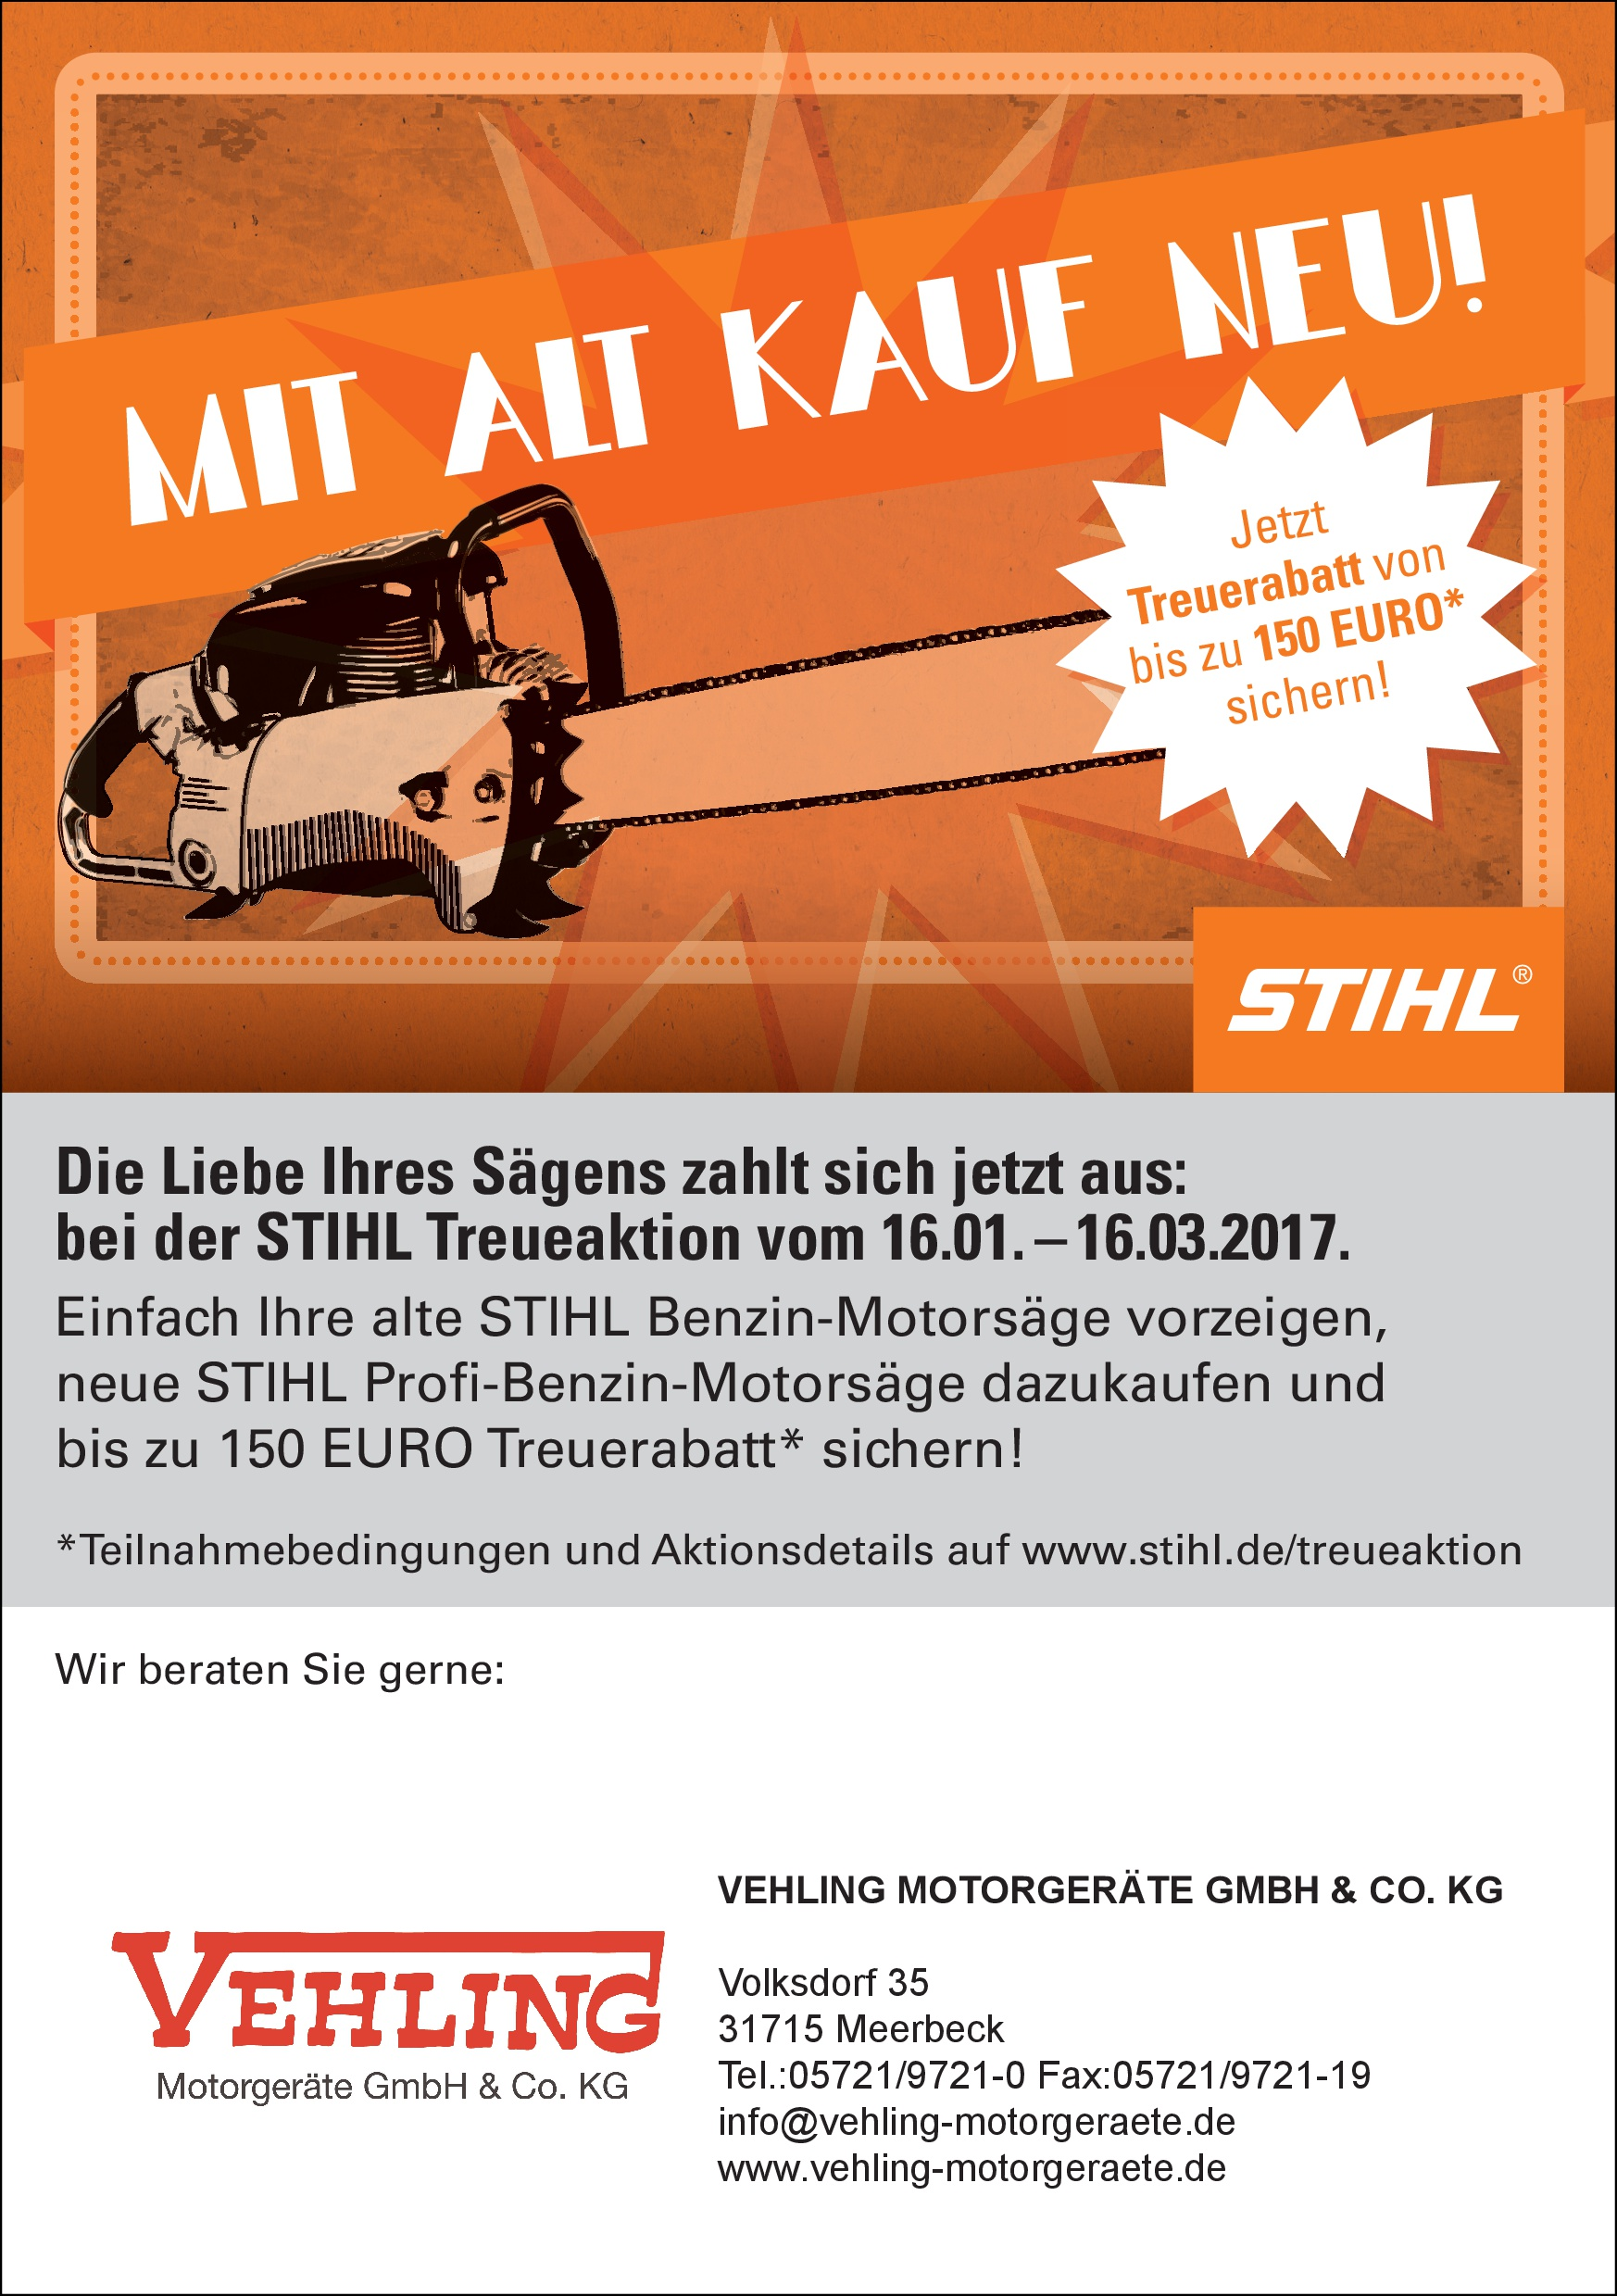 STIHL Treueaktion